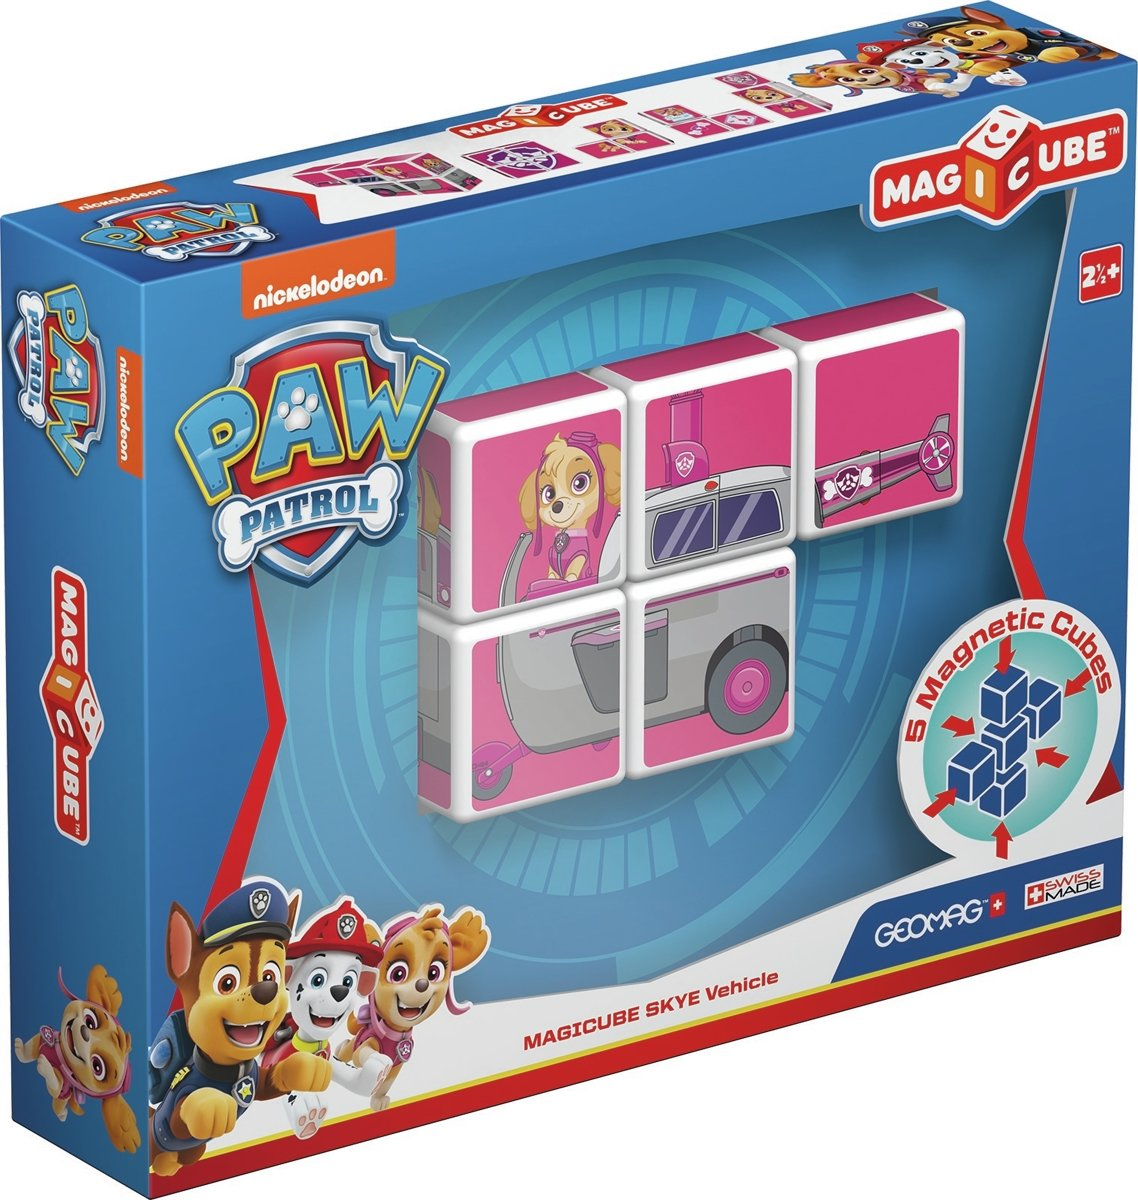 Geomag MagiCube Paw Patrol Skye Helicopter - 5 delig